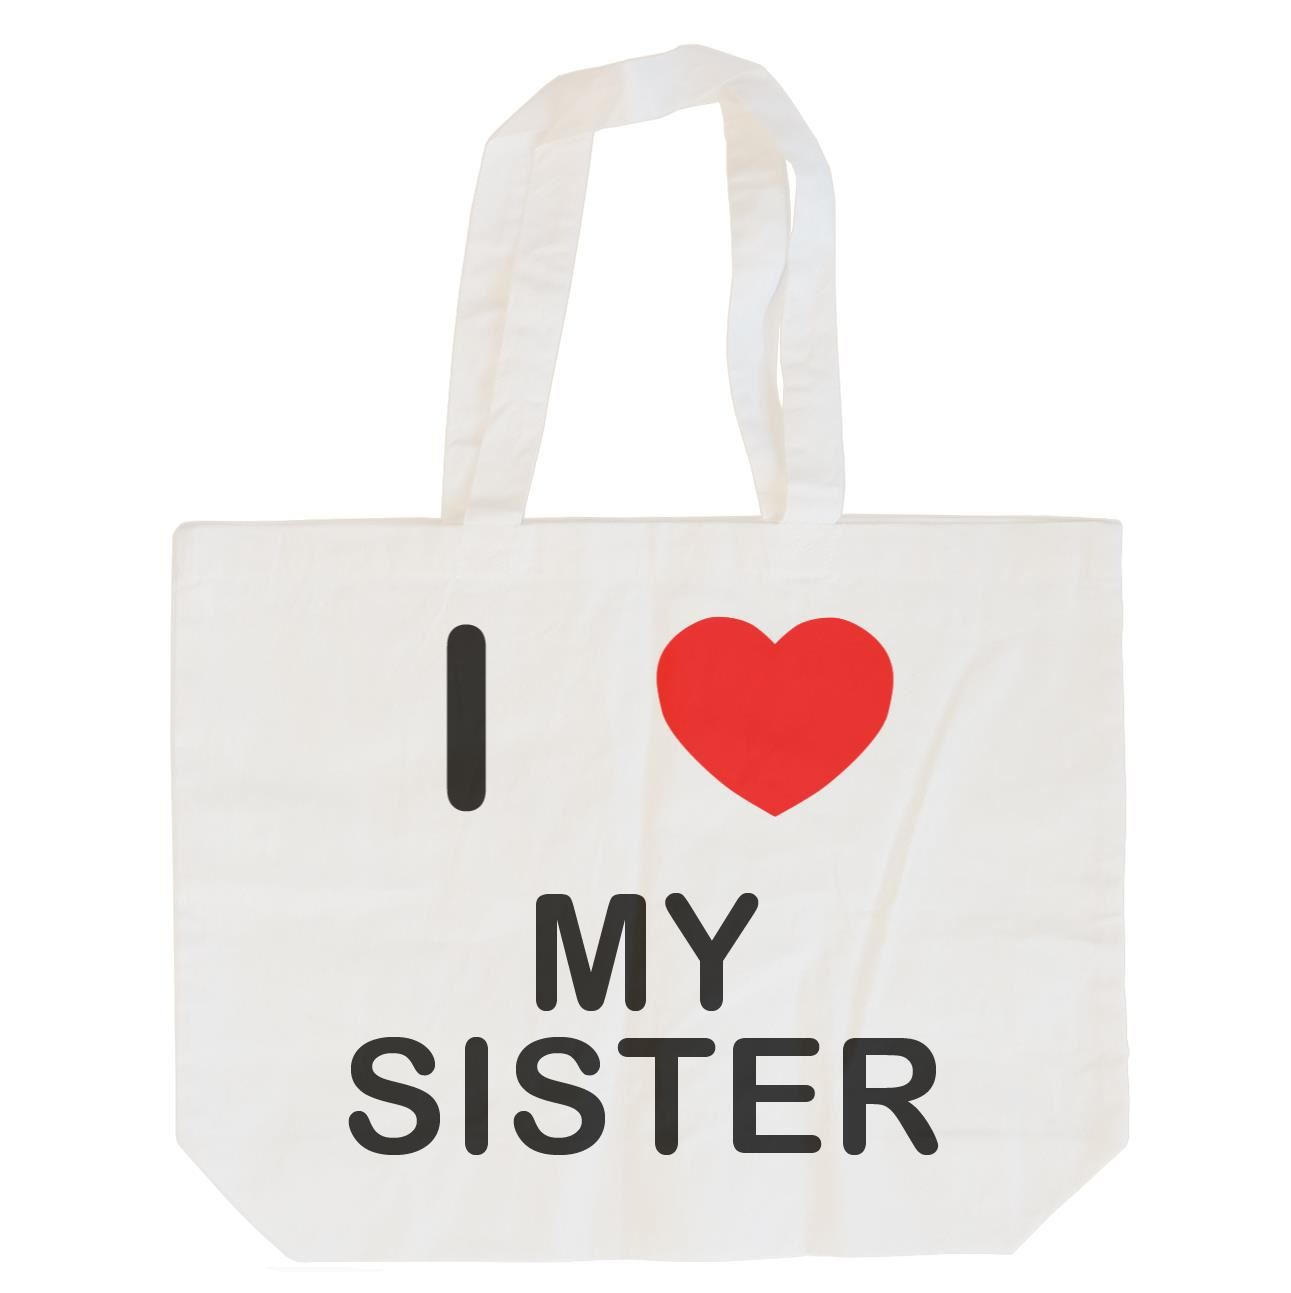 I Love My Sister - Cotton Bag | Size choice Tote, Shopper or Sling